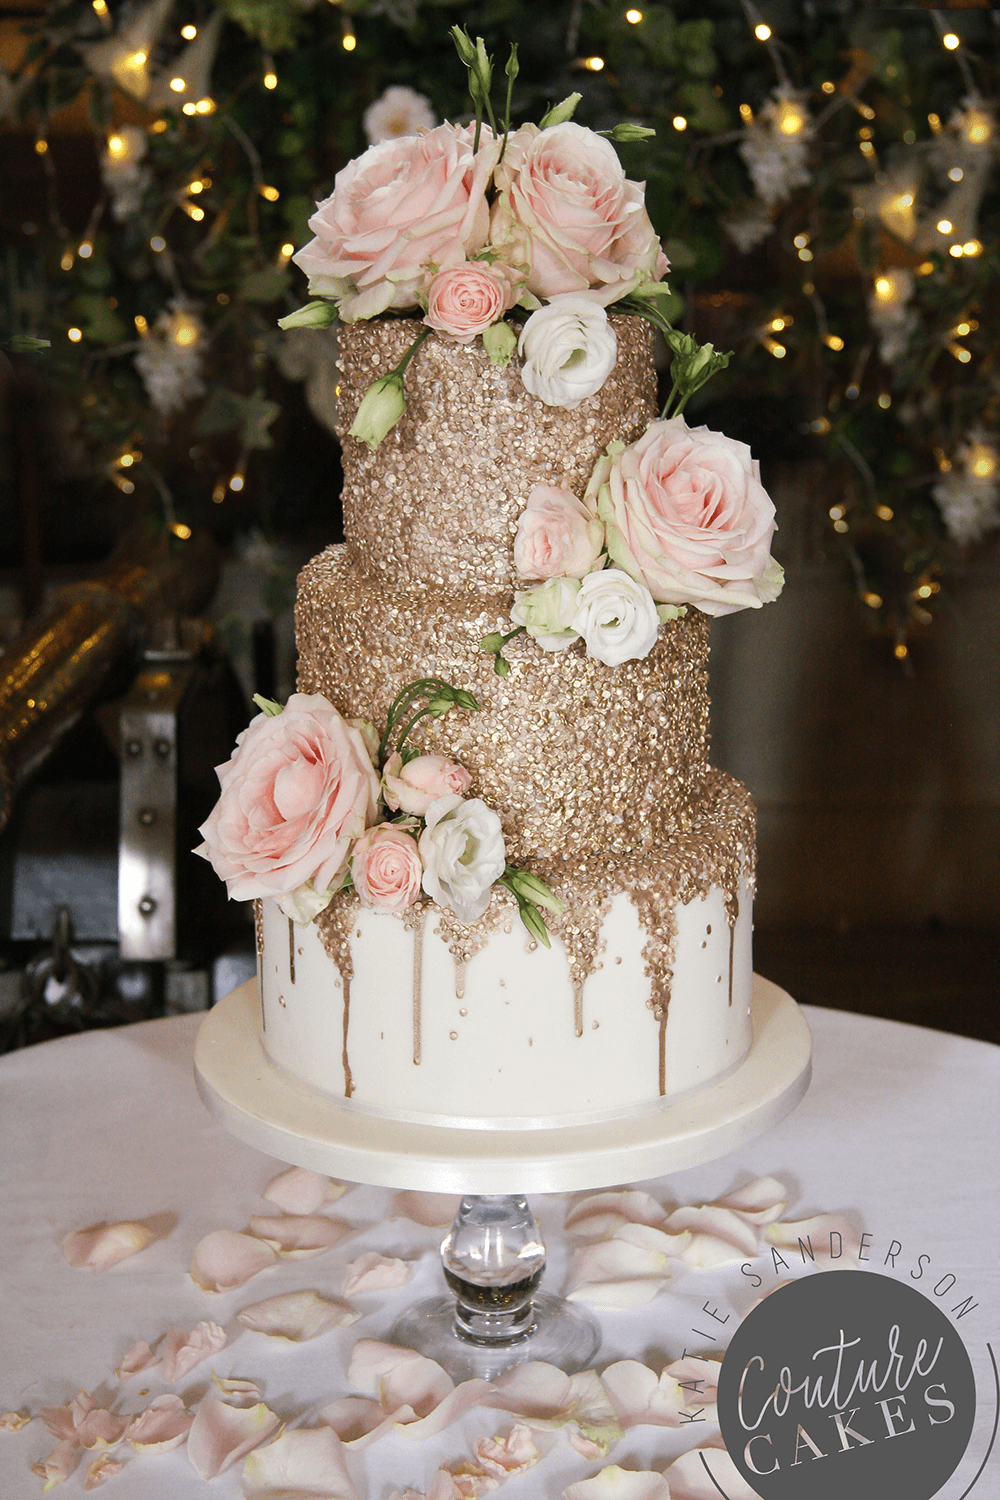 Gold Sequin Wedding Cake Serves 80 Portions Price Cat C 475 Plus 3 Tier